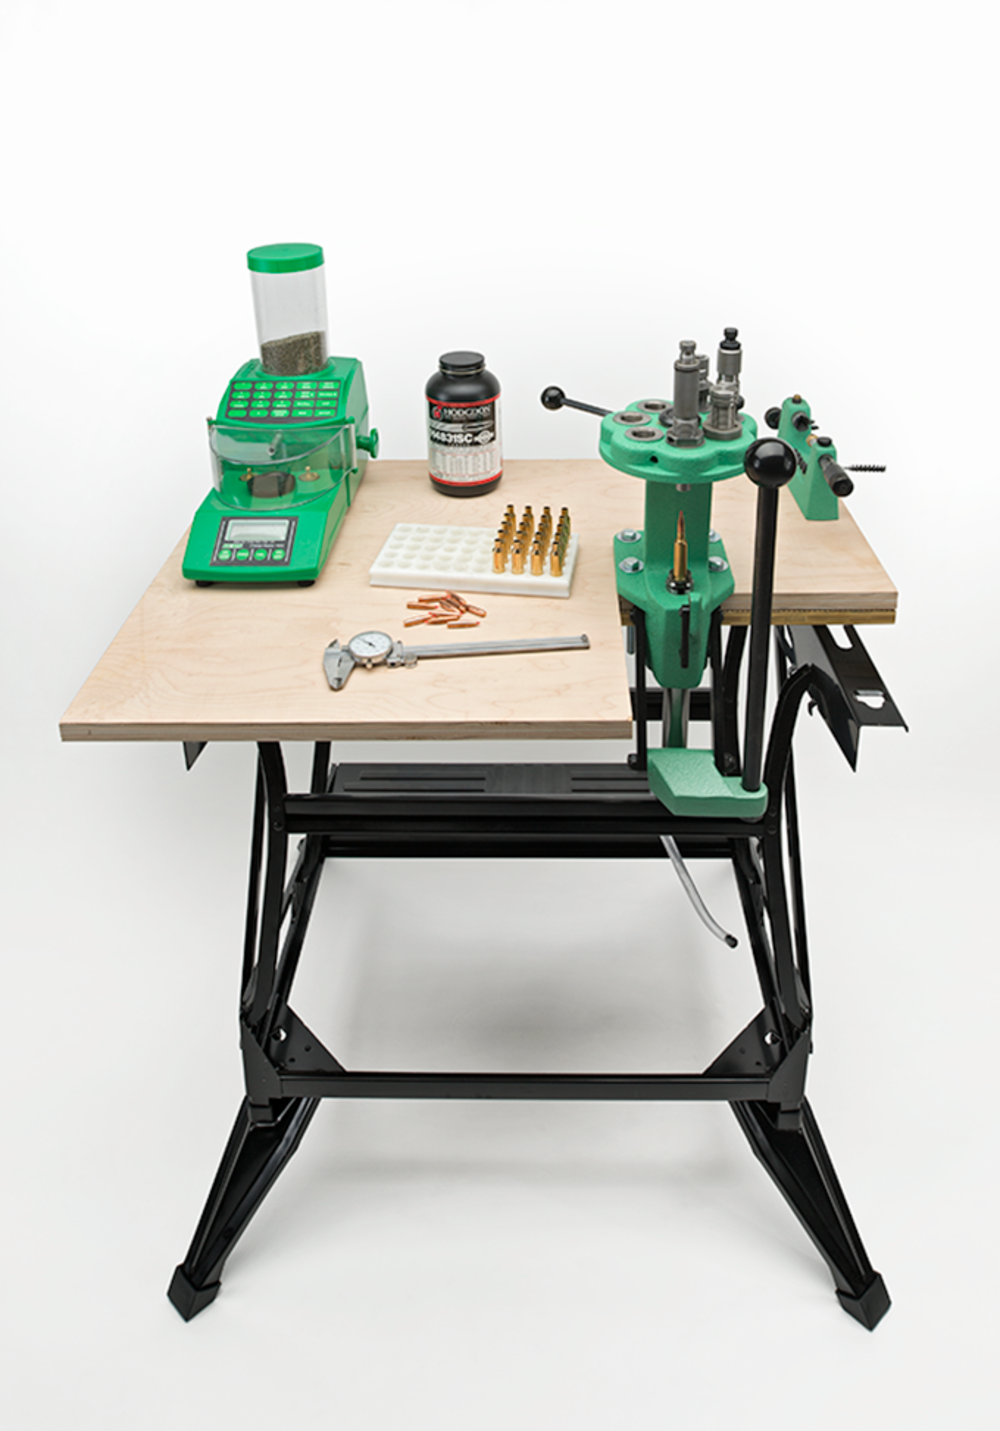 Reloading Benches | Reload Bench Plans | Reloading Table Plans